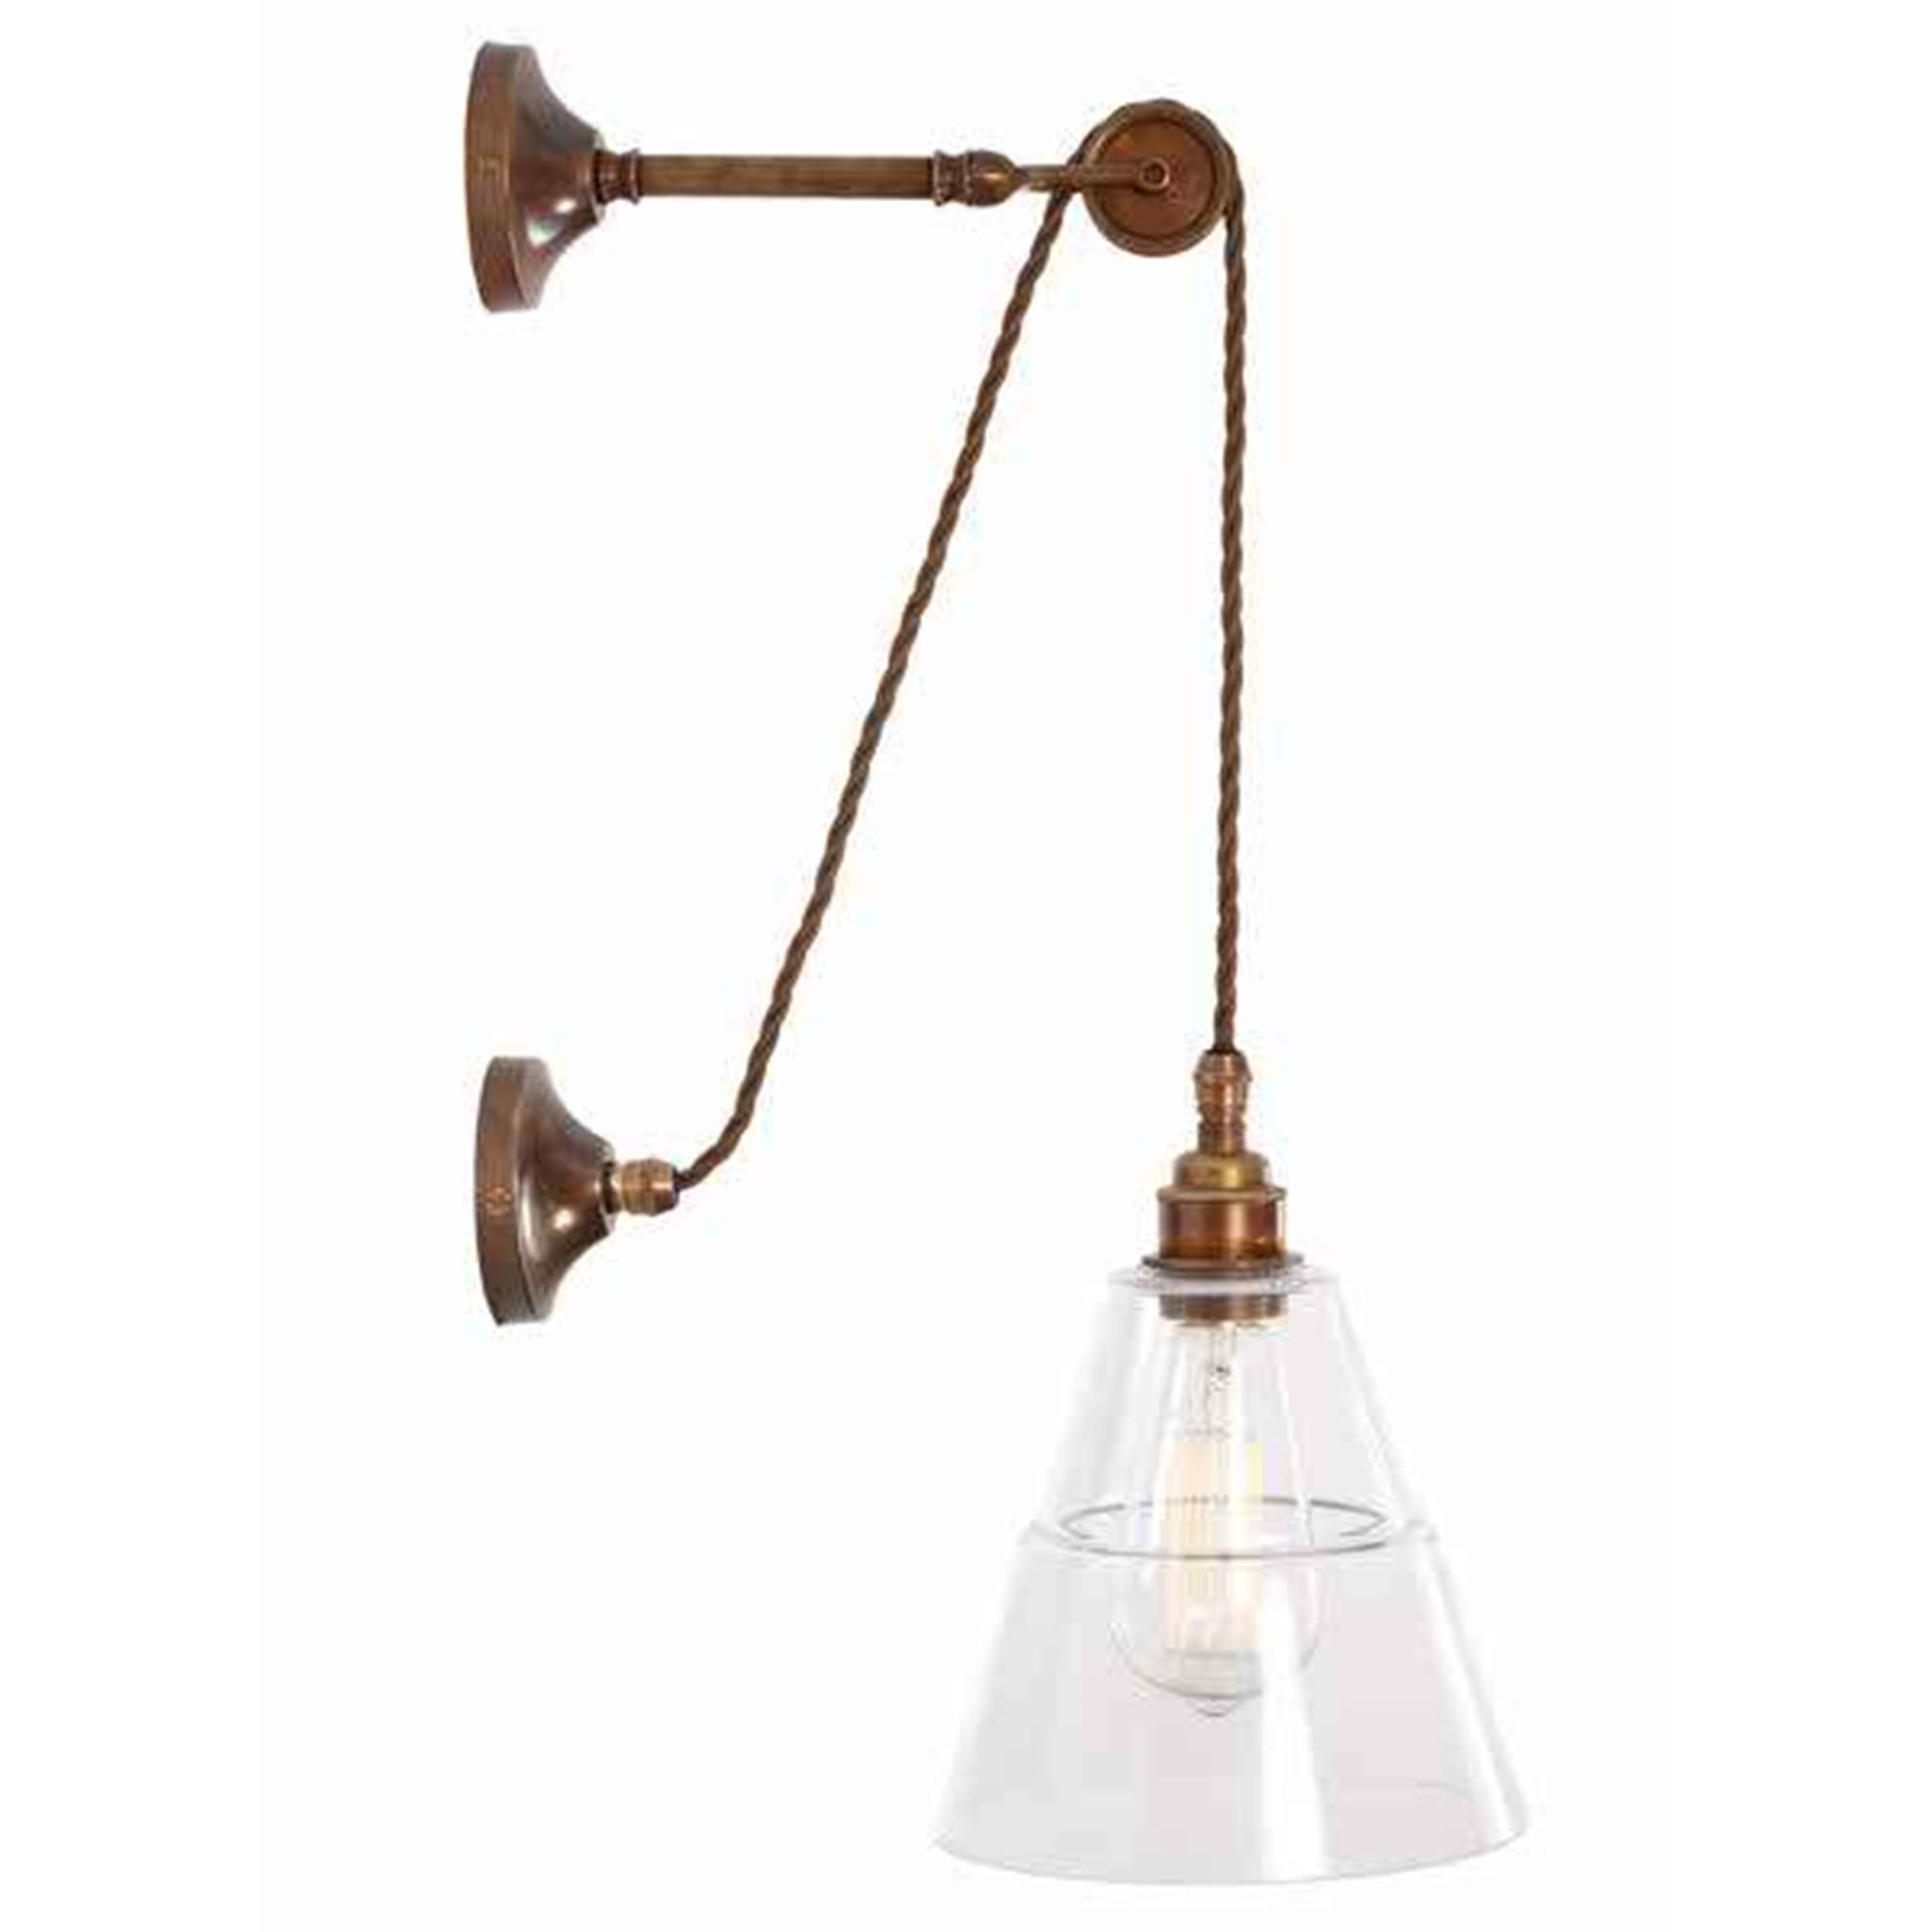 Mullan Lighting Rigale Coolie Industrial Pulley Wall Light Antique Brass